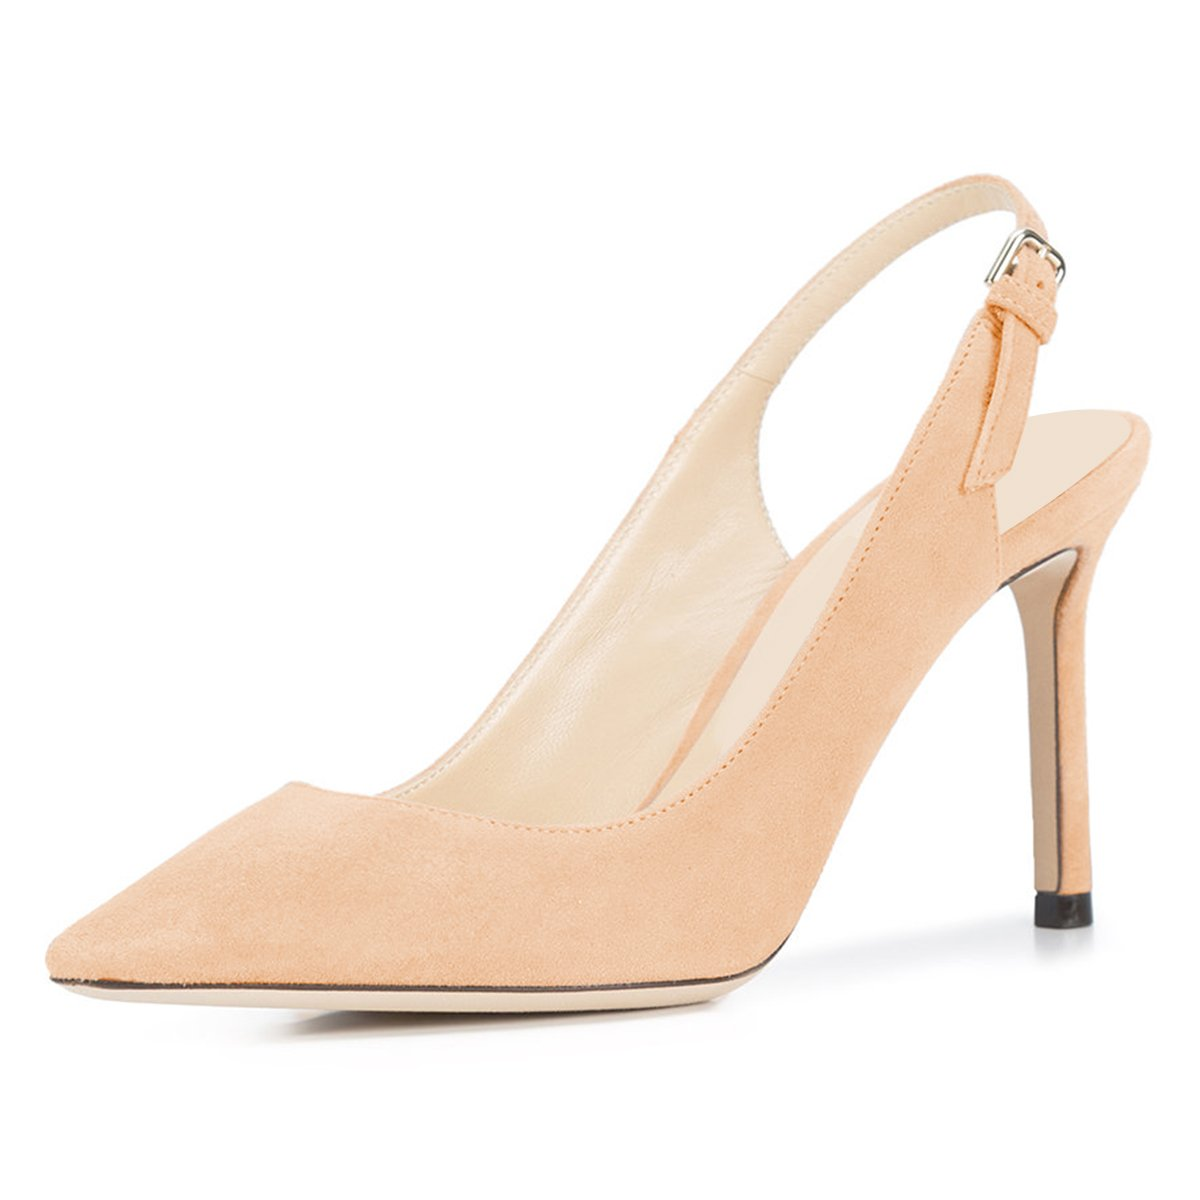 NJPU Women Pointed Toe Slingback Pumps Stiletto High Heels Office Shoes with Buckle B07C2QVPCV 11 B(M) US|Nude